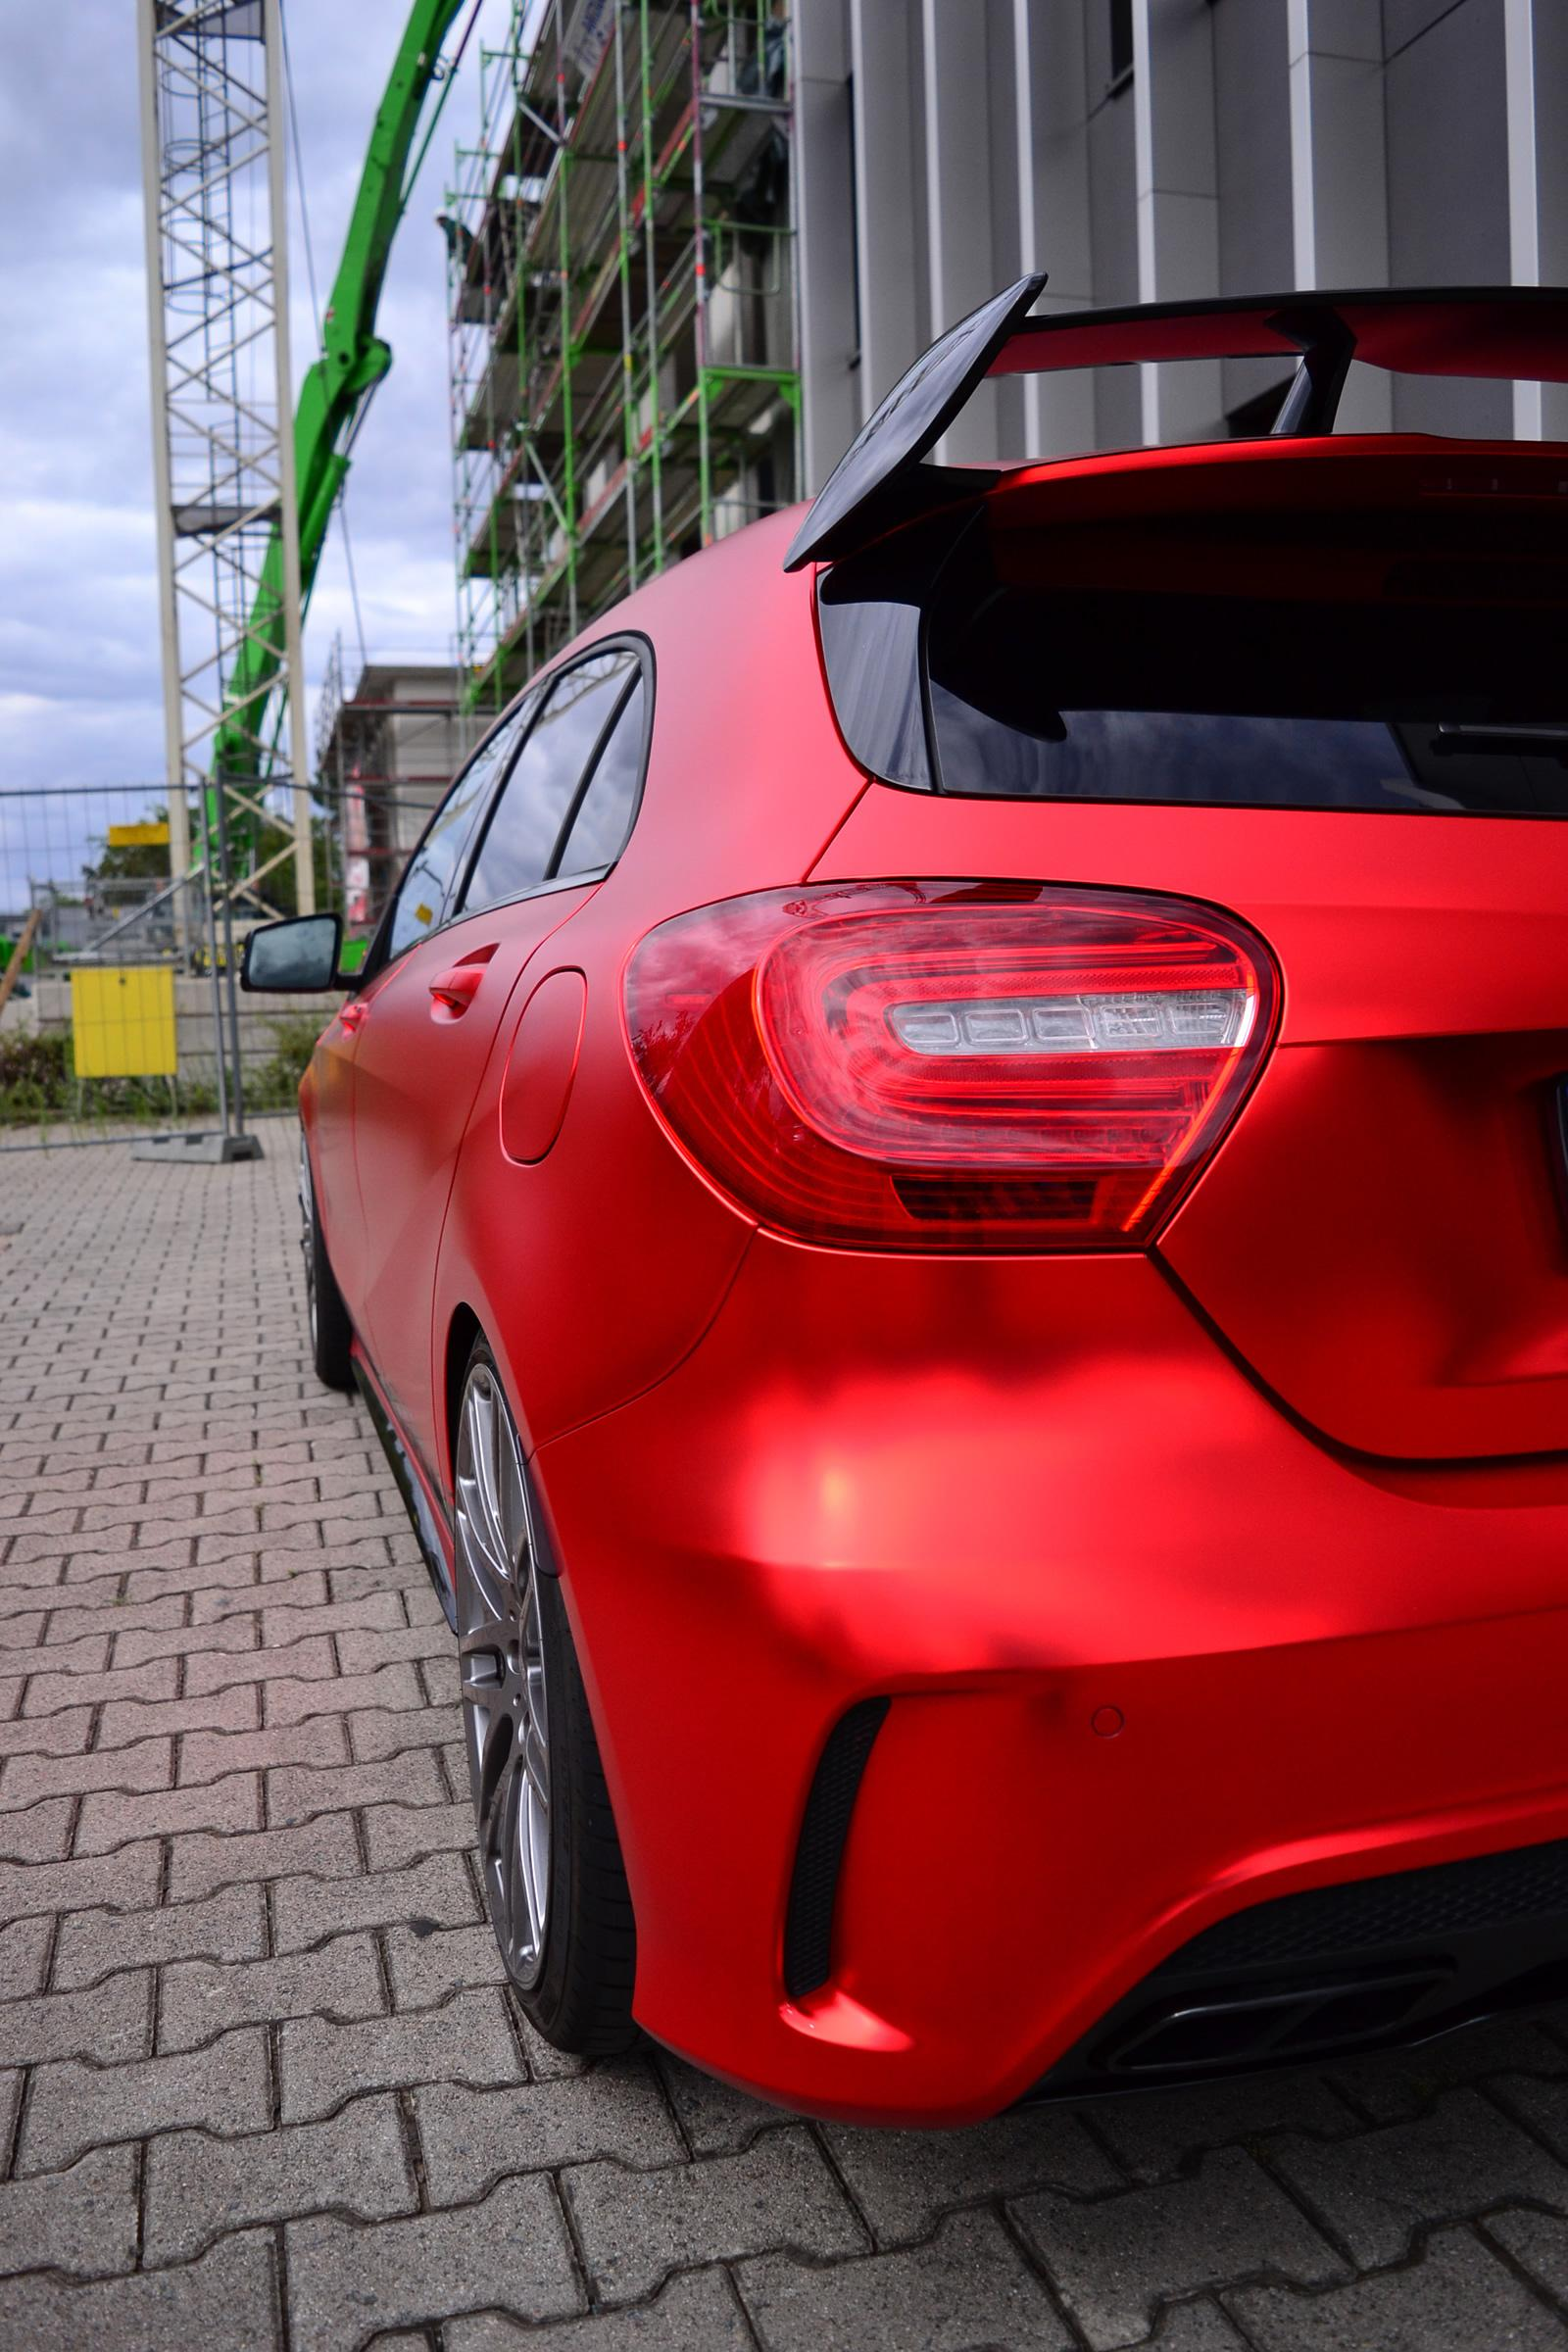 mercedes-benz a45 amg gets wrapped in wonderful red matte foil  is boosted to 435 hp